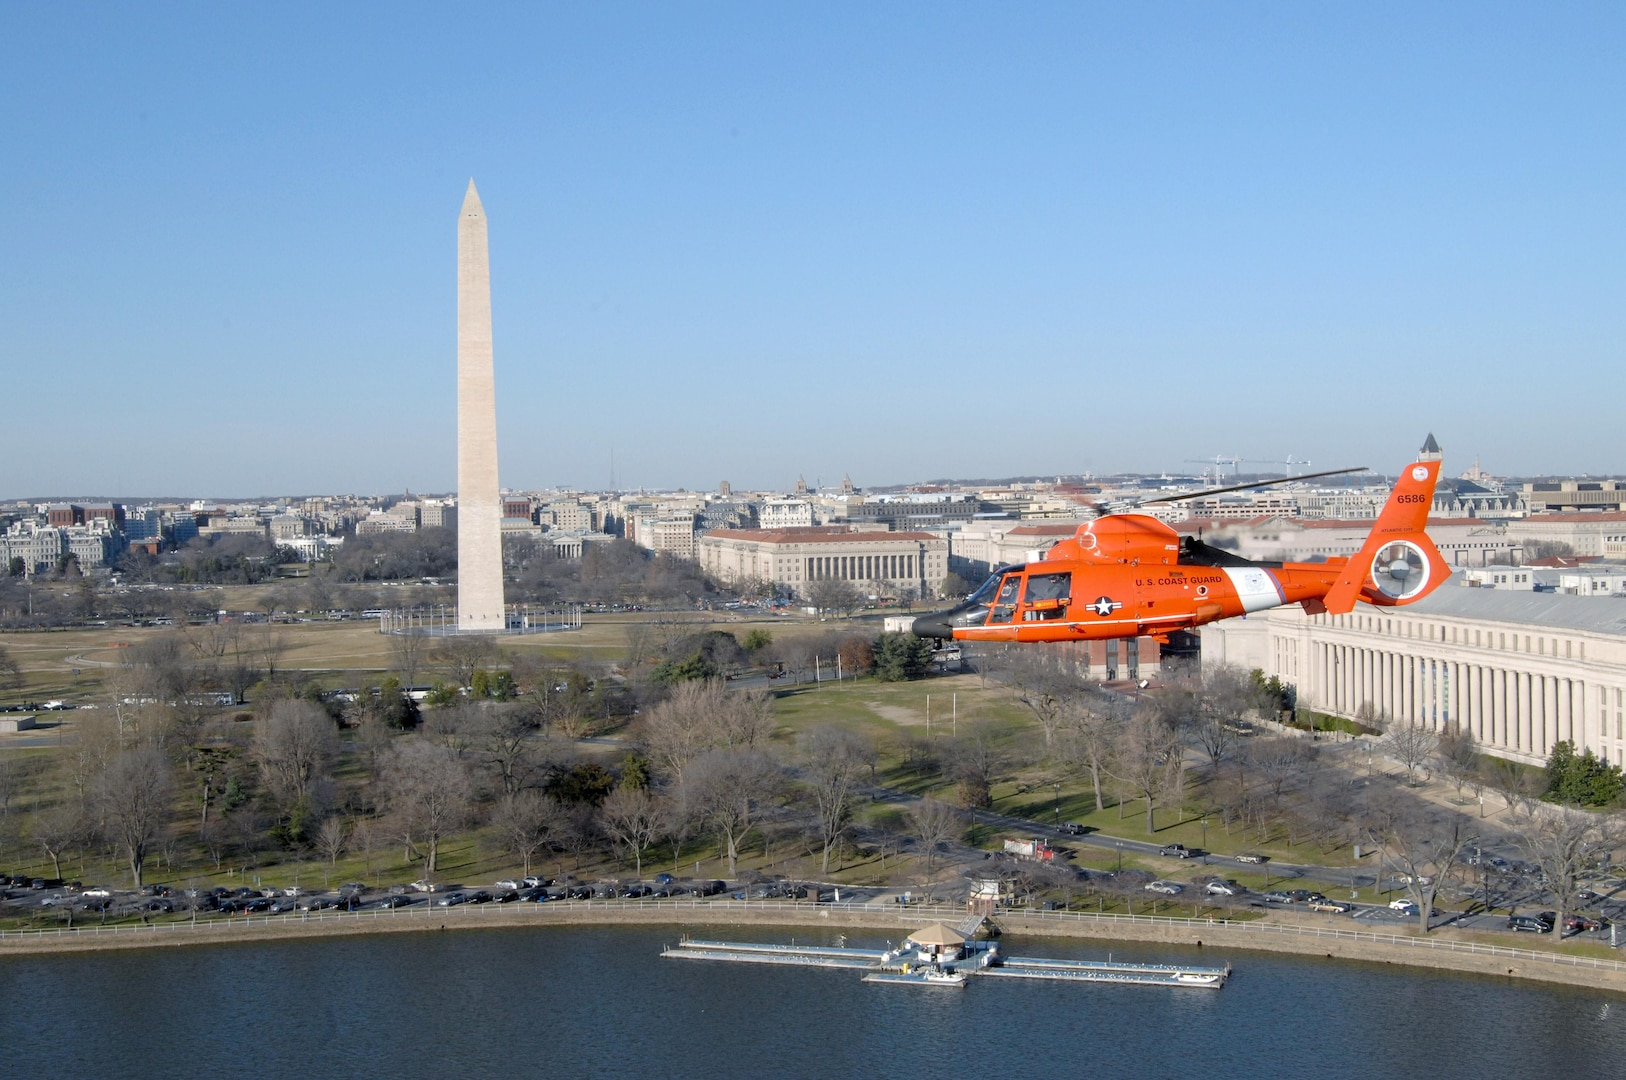 WASHINGTON, D.C. - A Coast Guard MH-65 Dolphin helicopter from Coast Guard Air Defense Facility Washington, D.C. flies by the Lincoln Memorial during a training flight Jan. 31. The unit's mission is to keep small general aviaiton aircraft from entering the area of downtown Washington, D.C. The helicopters and crews come from Coast Guard Air Station Atlantic City, N.J., and rotate in and out of the air defense mission on a regular basis. The Coast Guard has performed this mission since it first stood up in 2006.   (U.S. Air Force photo by Tech. Sgt. Thomas J. Doscher)